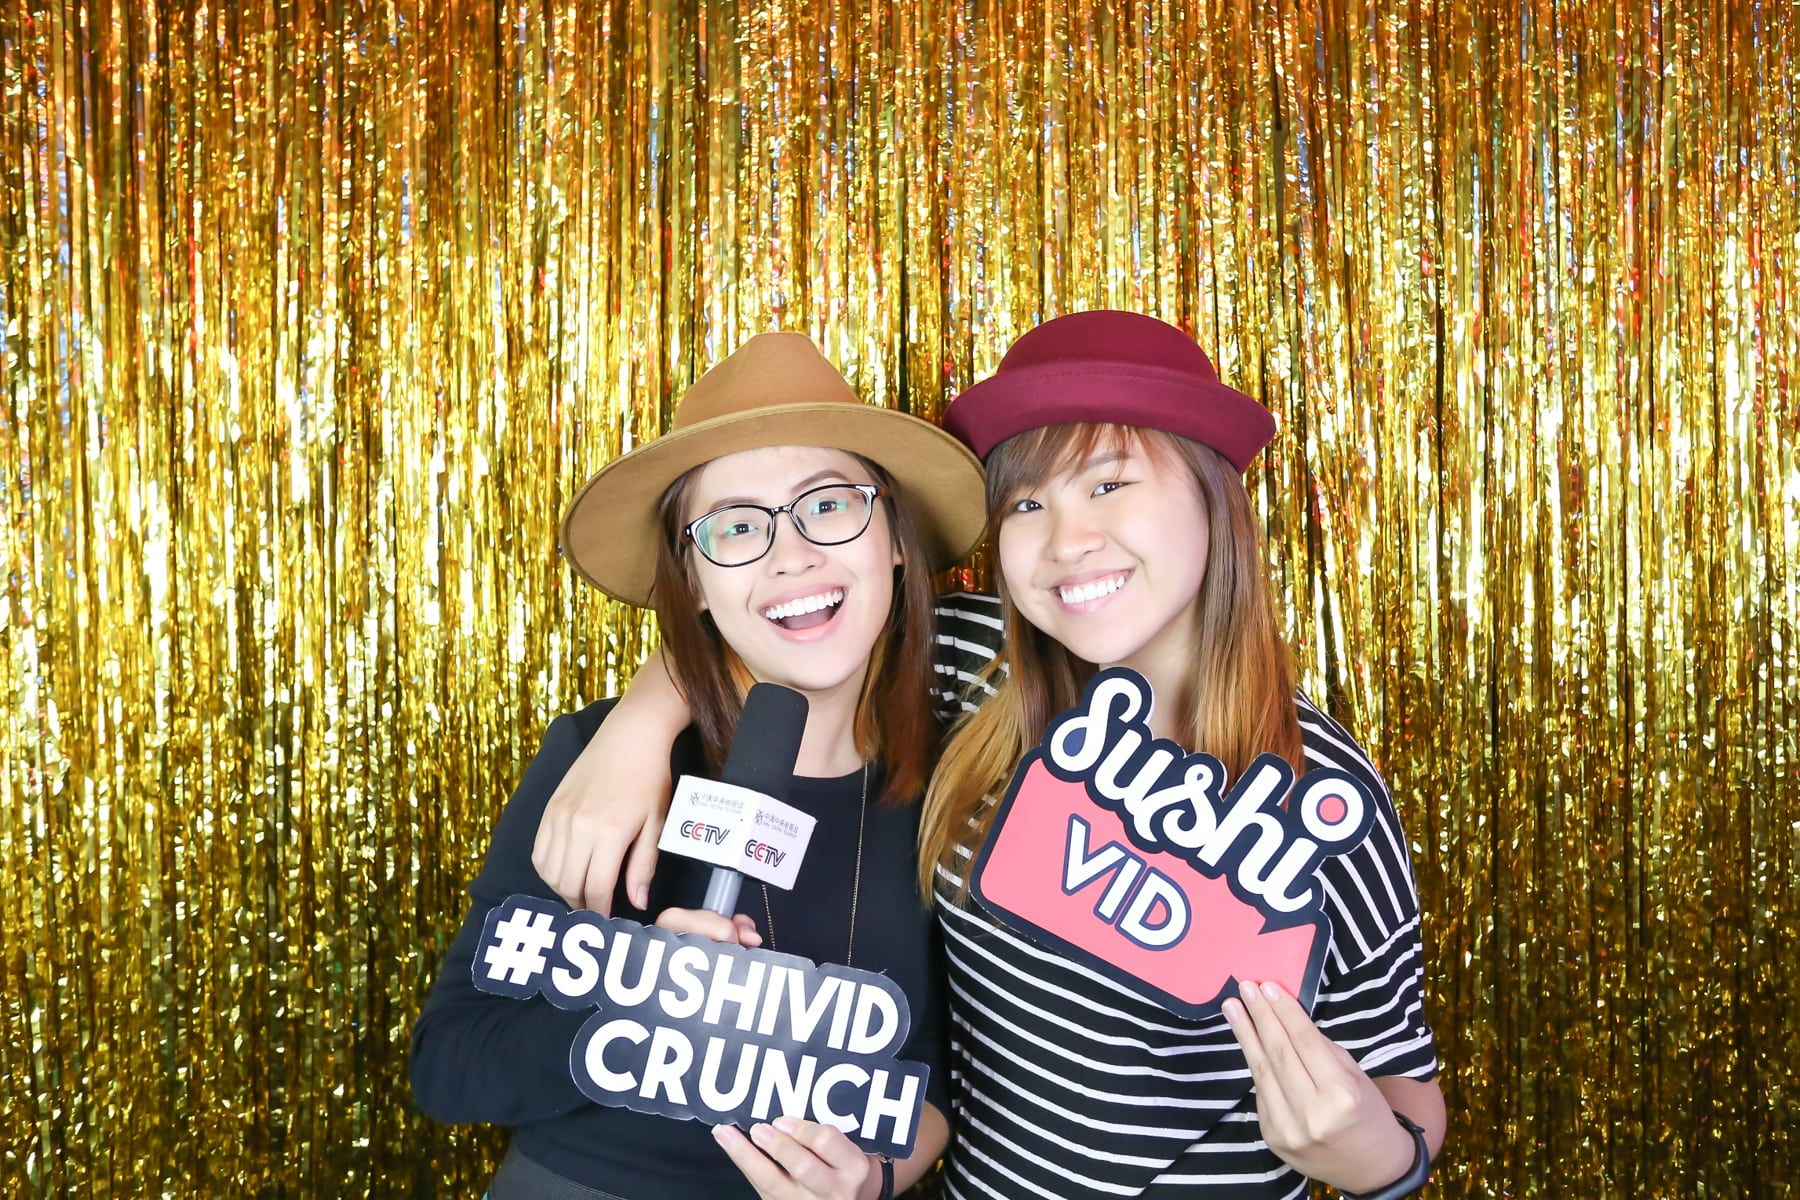 Sushivid+crunch+tagbooth+33